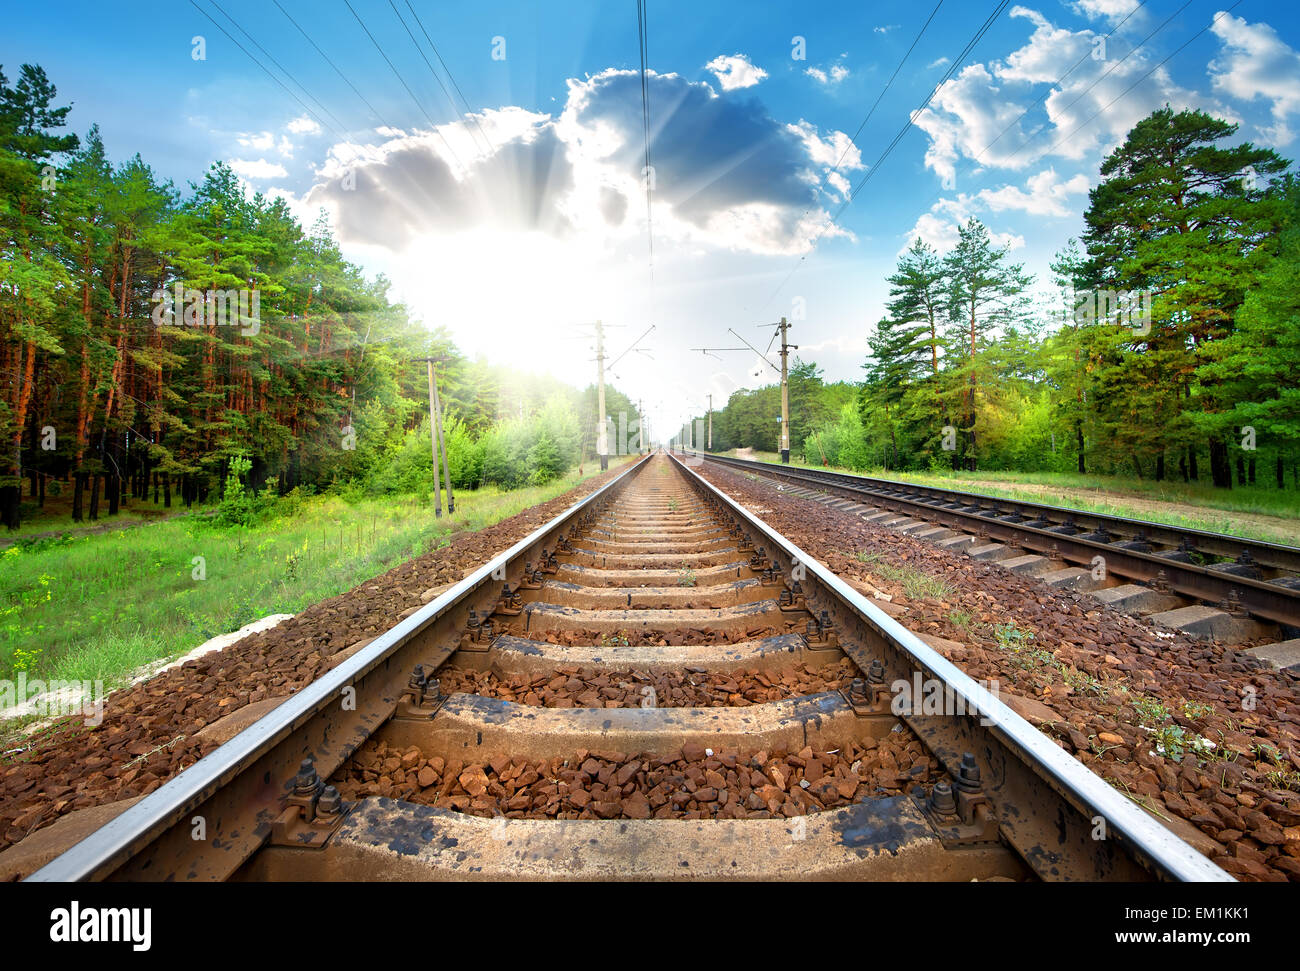 Railroad through the green pine forest close-up - Stock Image